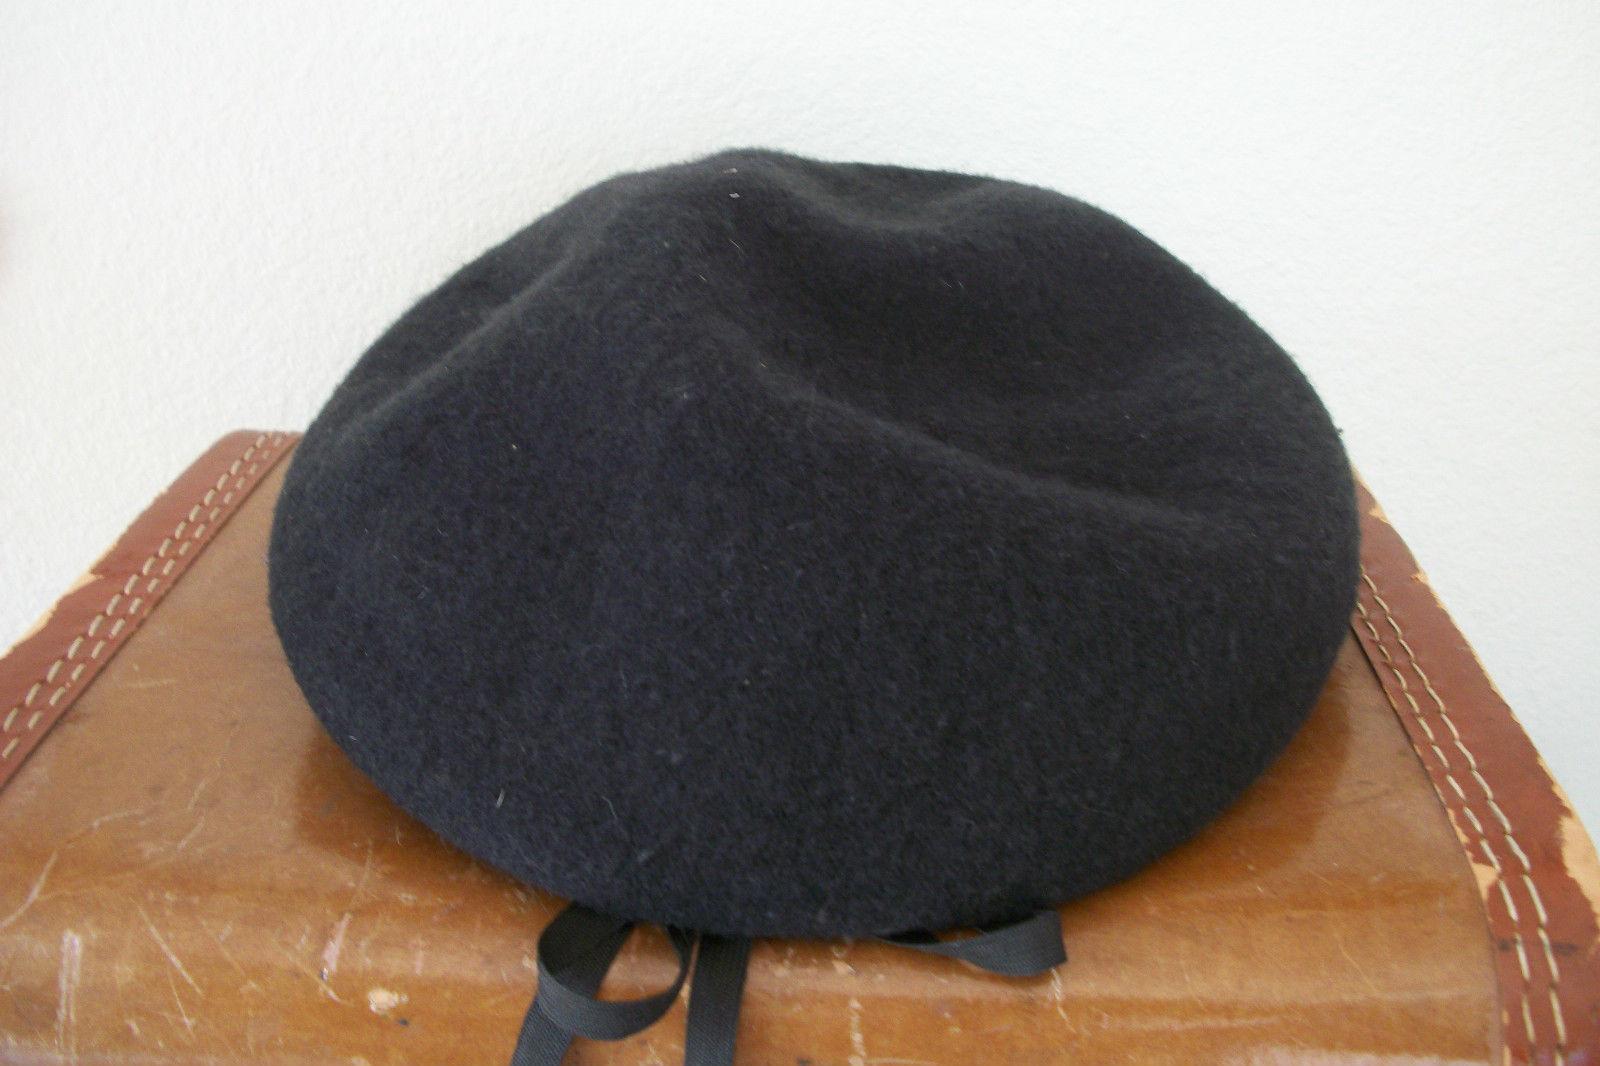 Vintage 1960s Sailor Inspired Black Wool Cap Hat made by United Hat